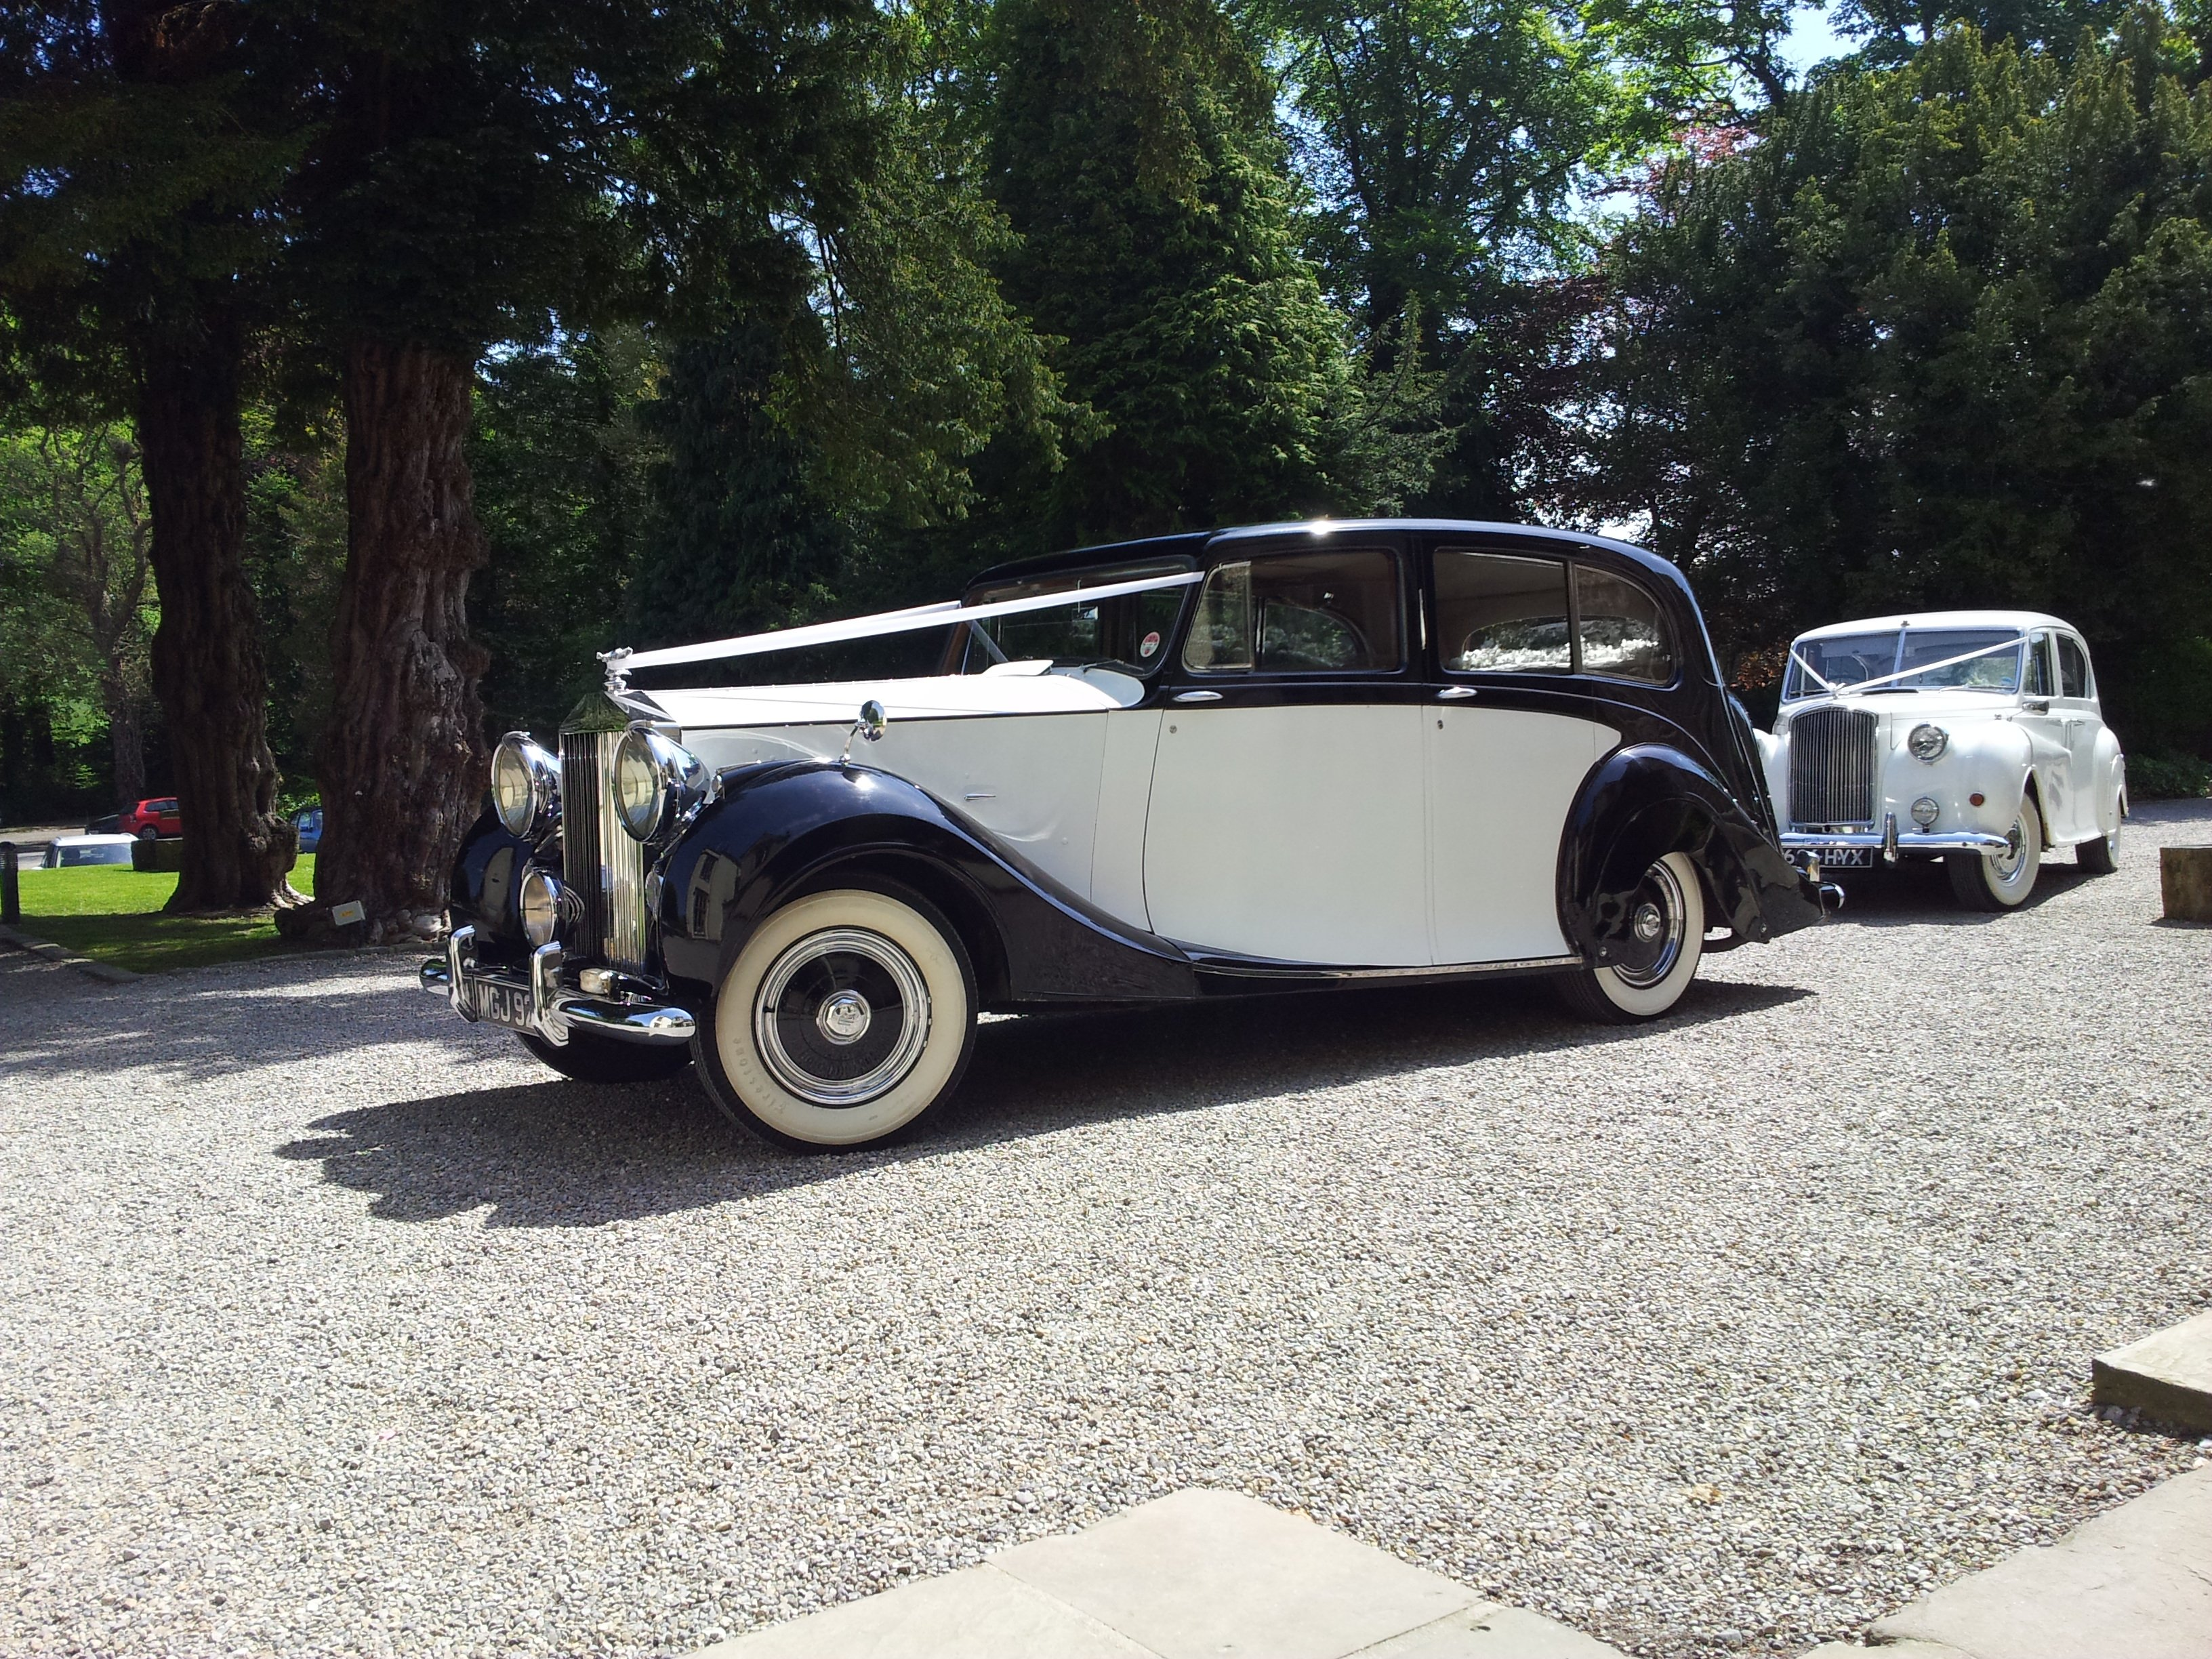 front view of Rolls Royce Silver Wraith limousine